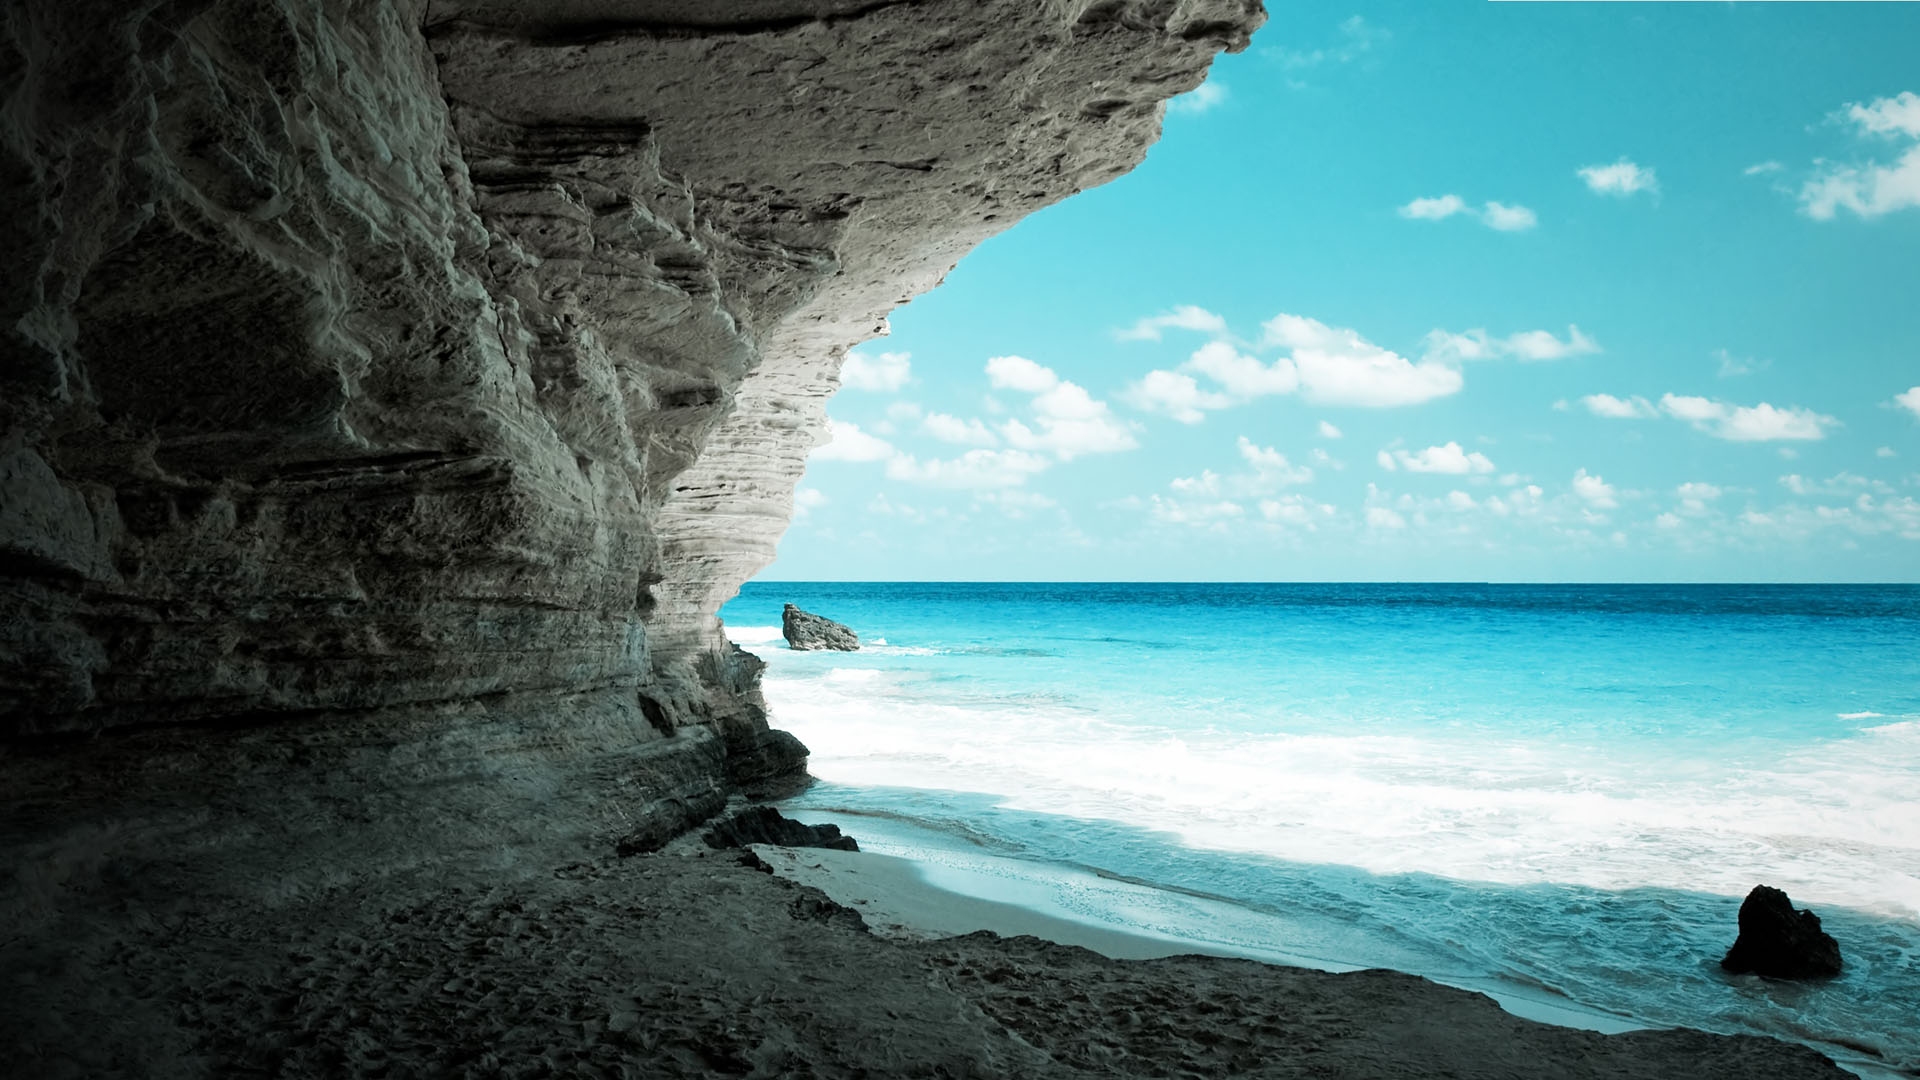 amazing full hd wallpaper cave on the beach wallpaper 1920x1080